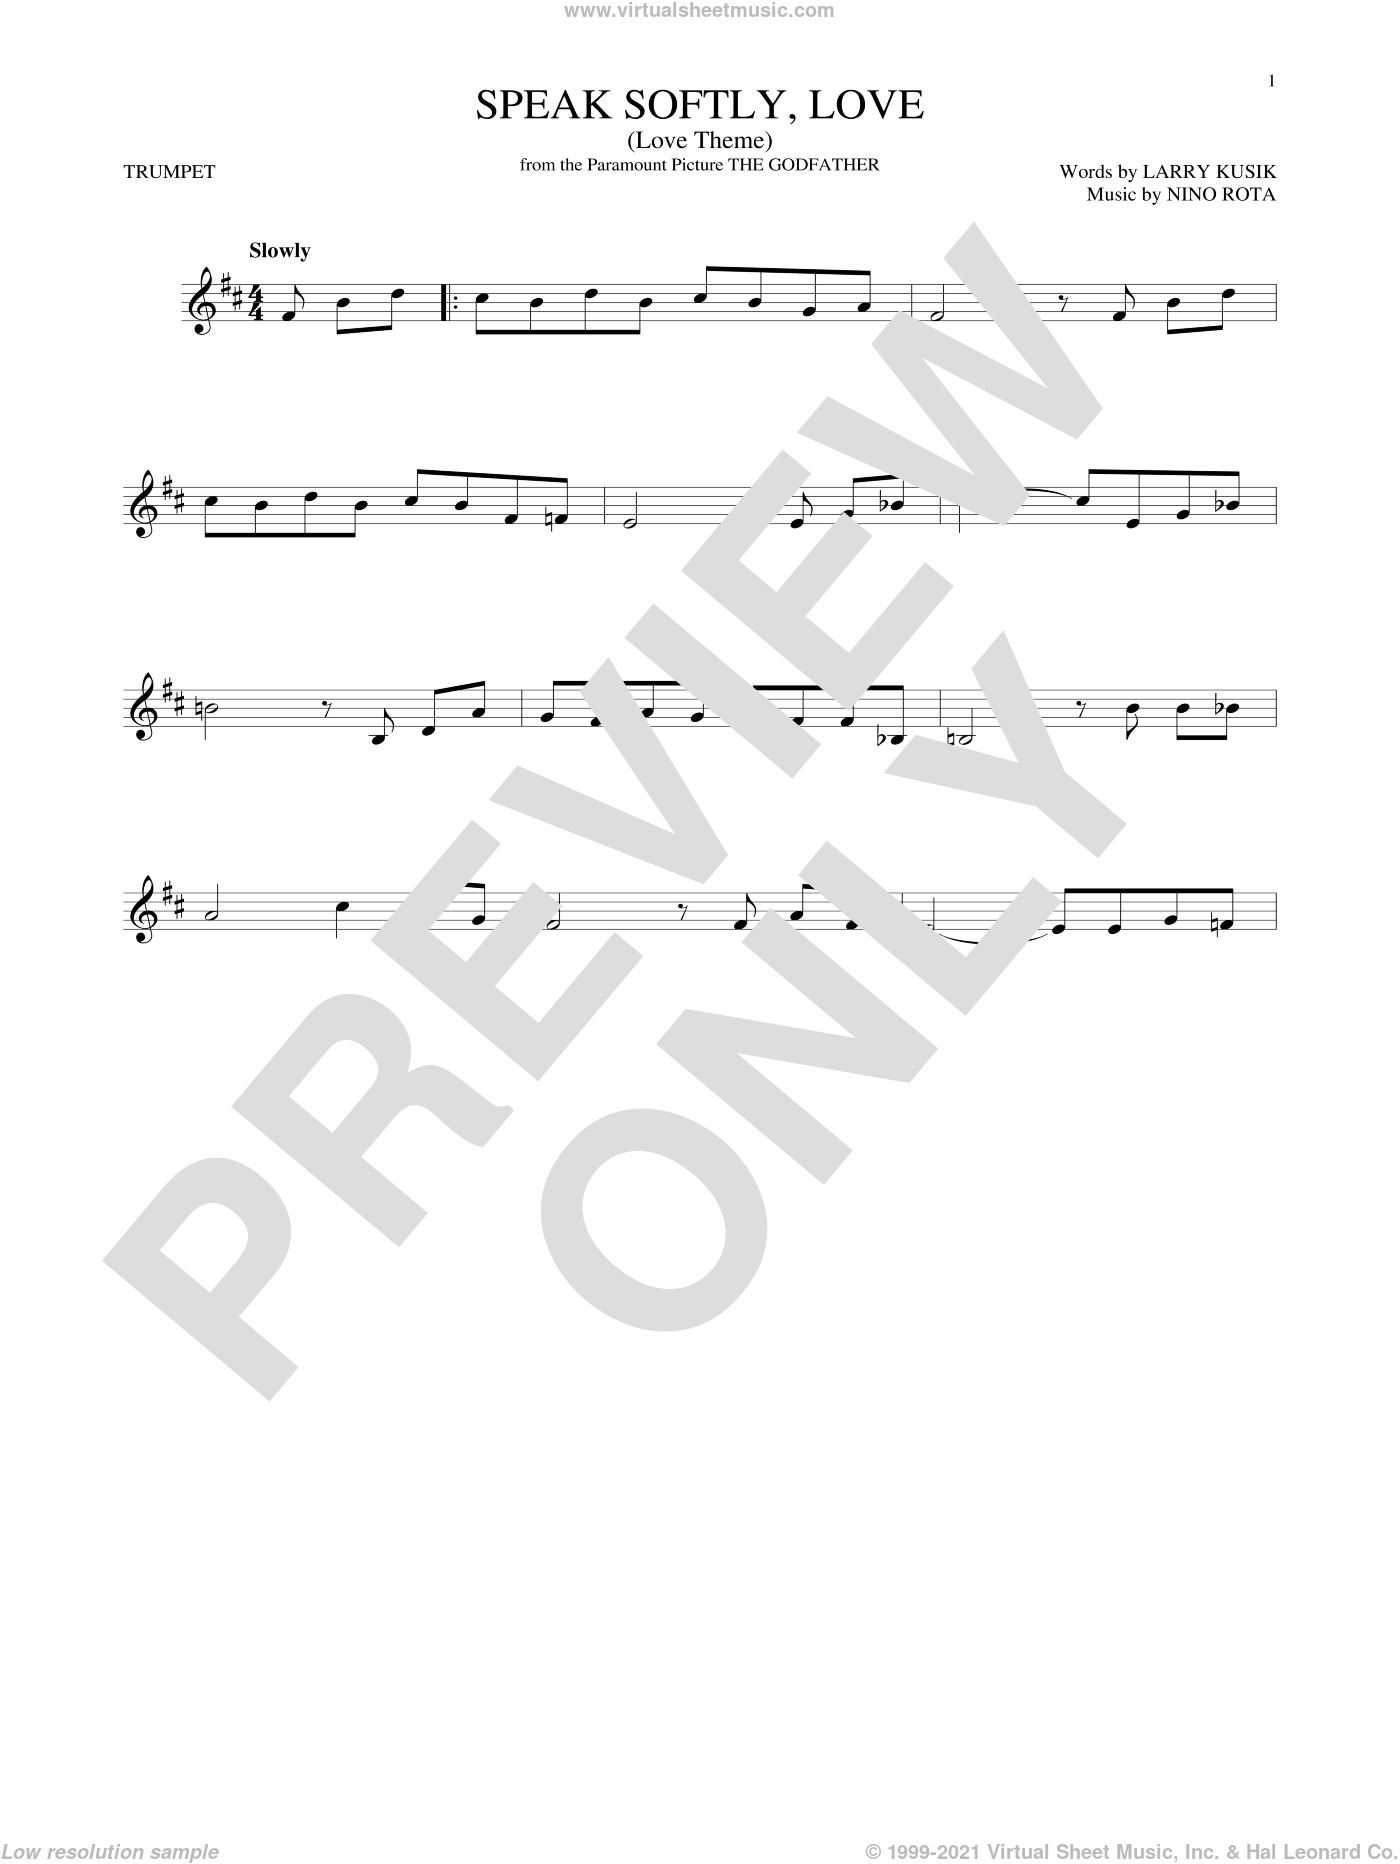 Speak Softly, Love (Love Theme) sheet music for trumpet solo by Andy Williams, Larry Kusik and Nino Rota, intermediate skill level